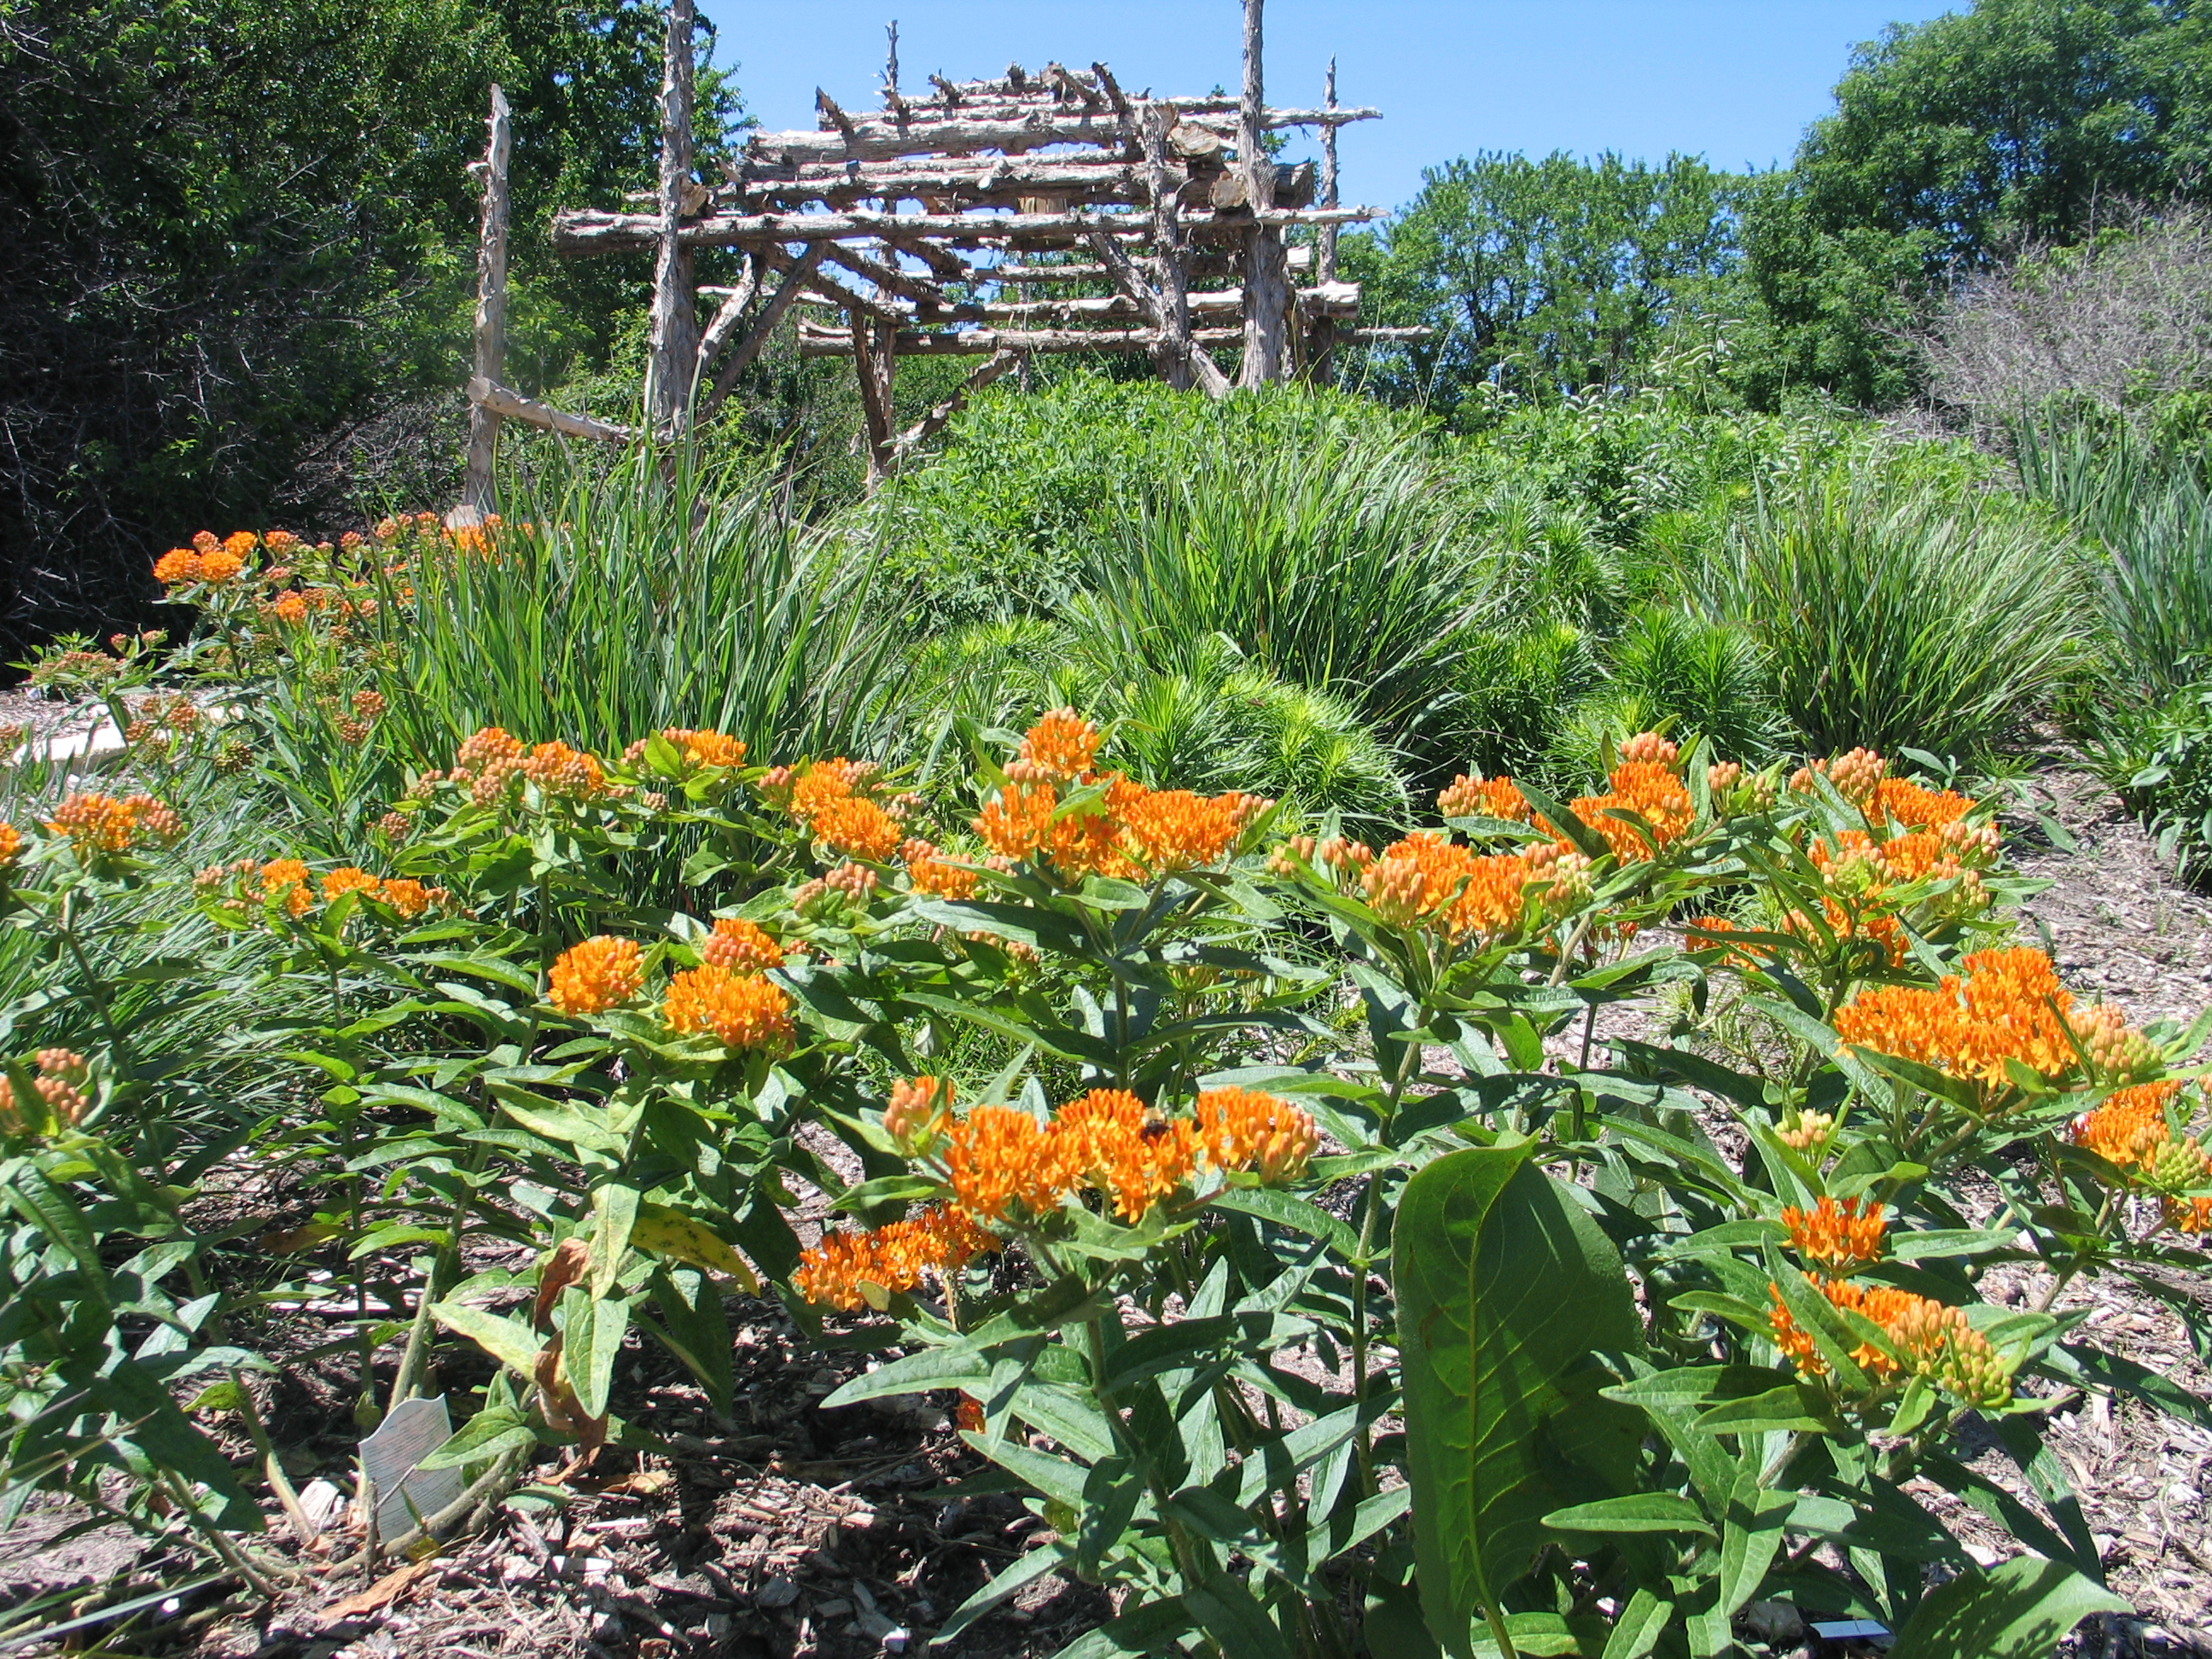 How to Design a Native Plant Garden - Dyck Arboretum on Tree Planting Ideas For Backyard id=35922